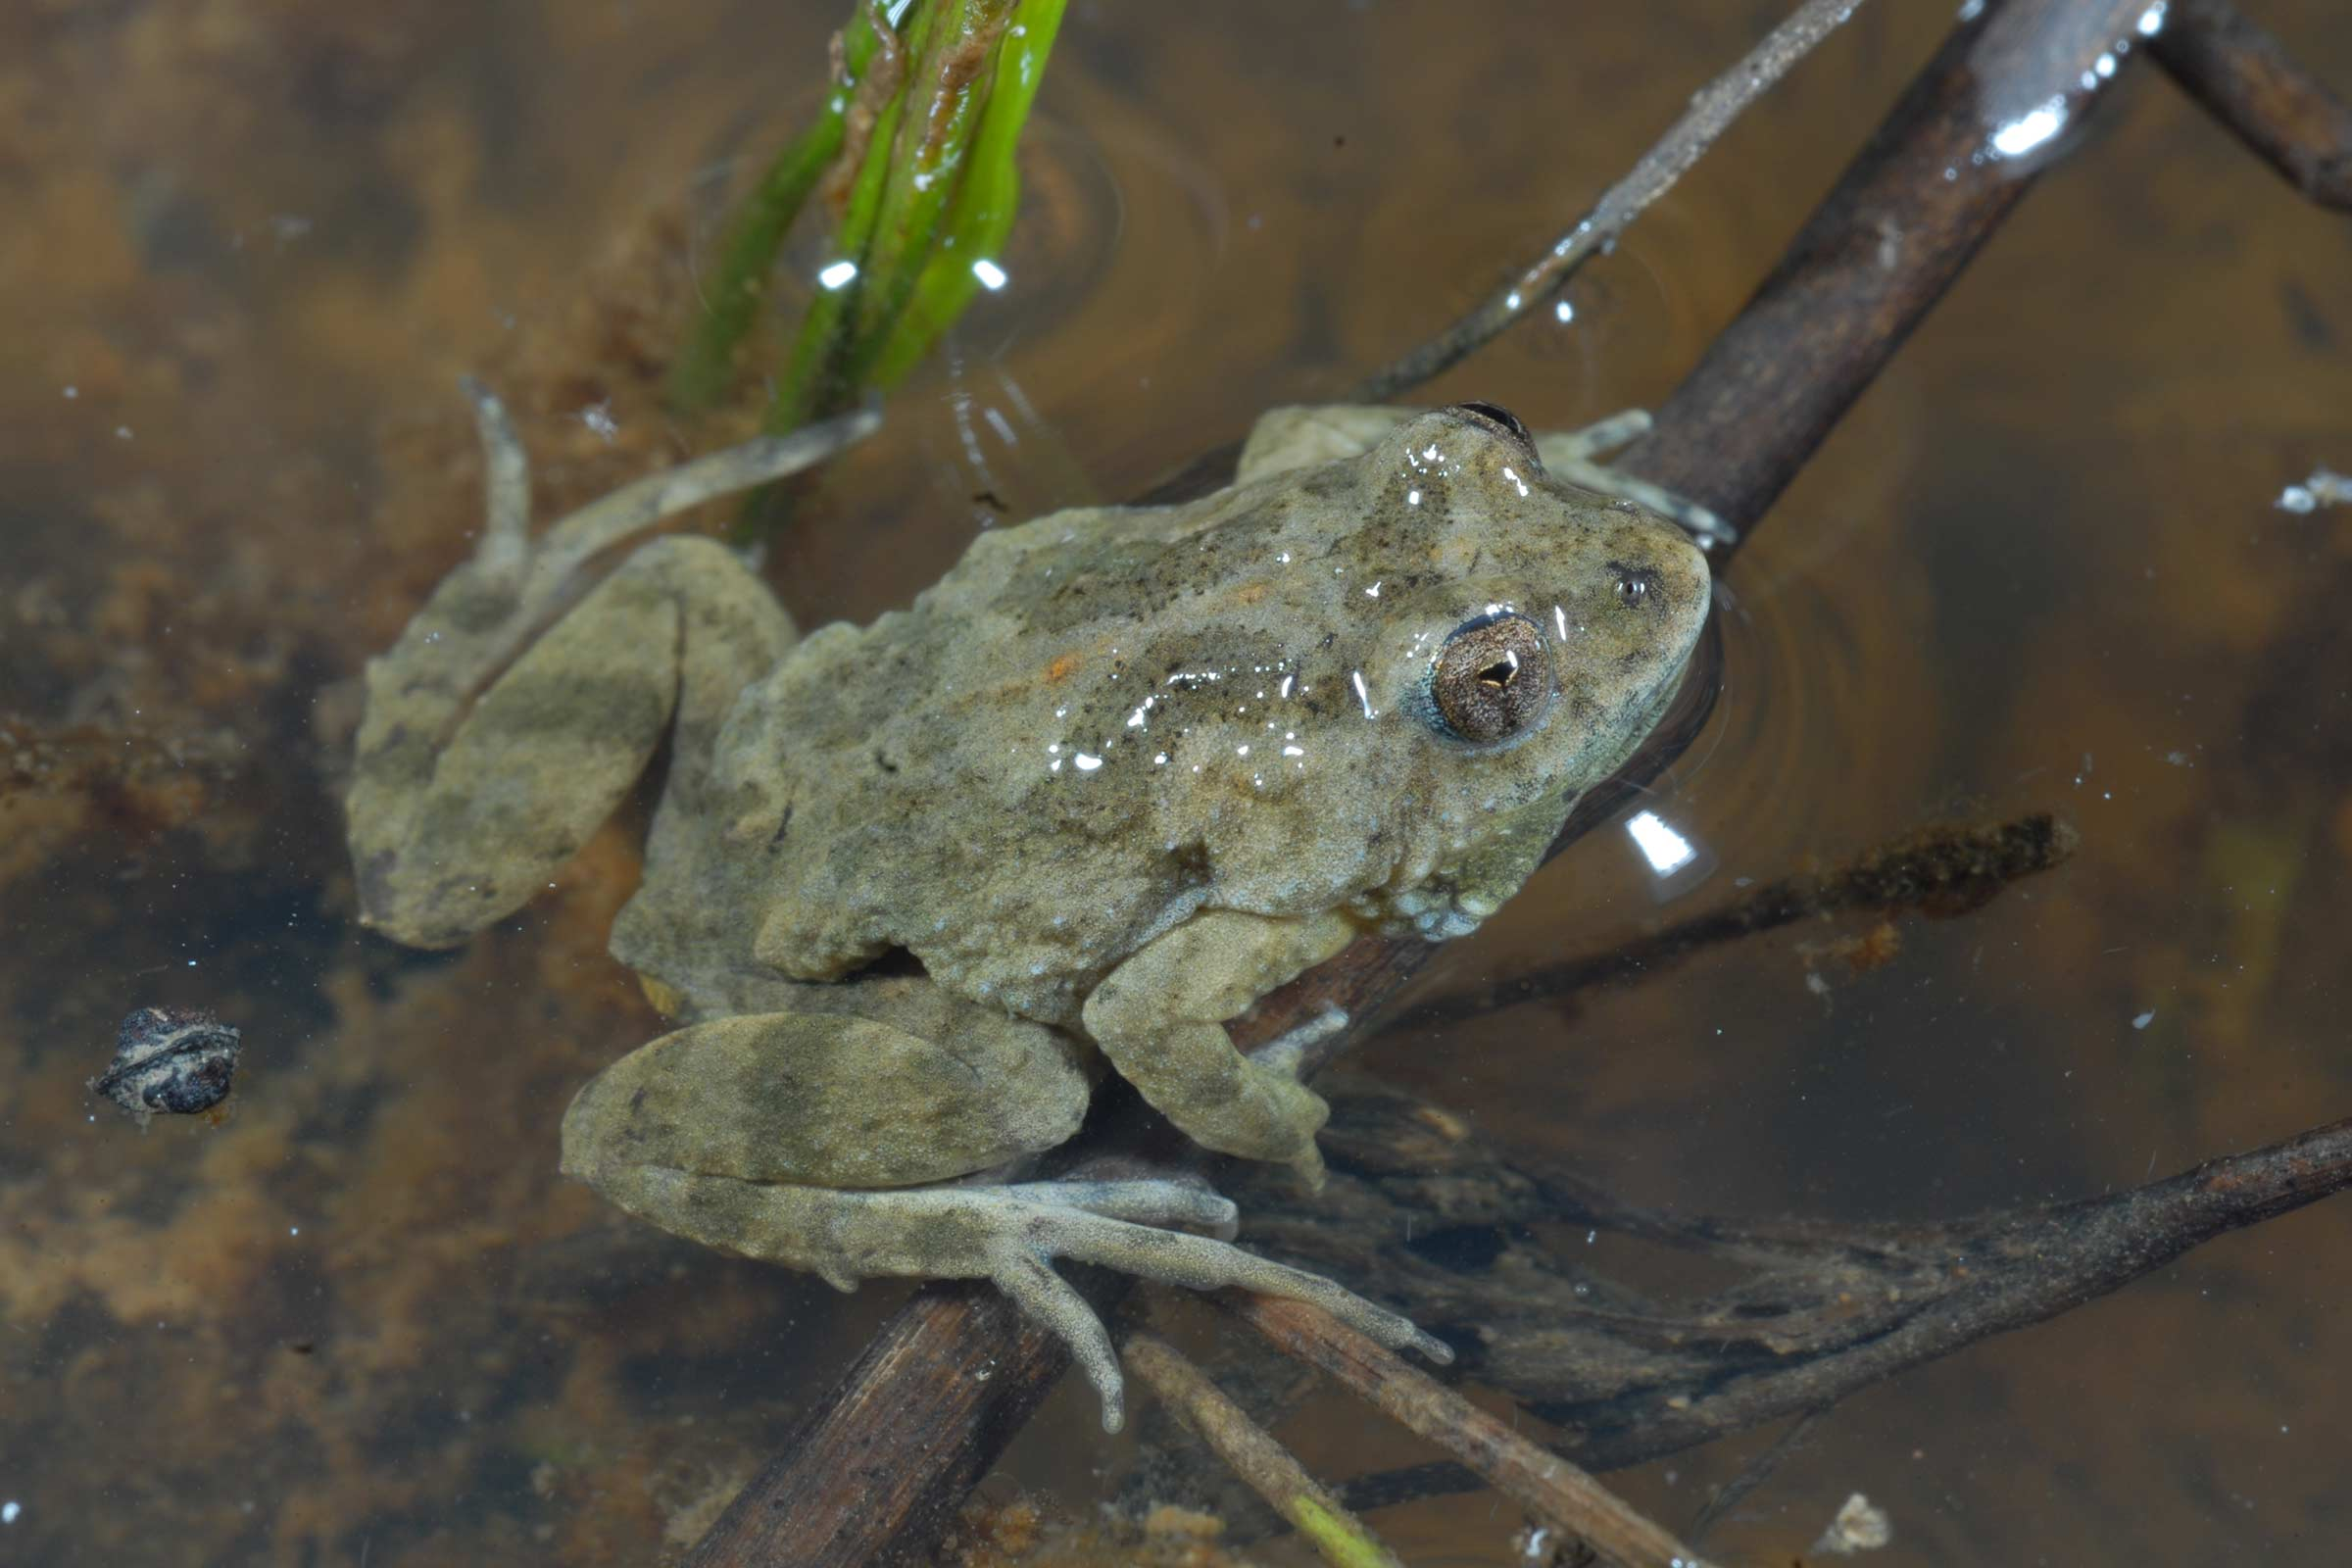 A Sloane's froglet in a pond